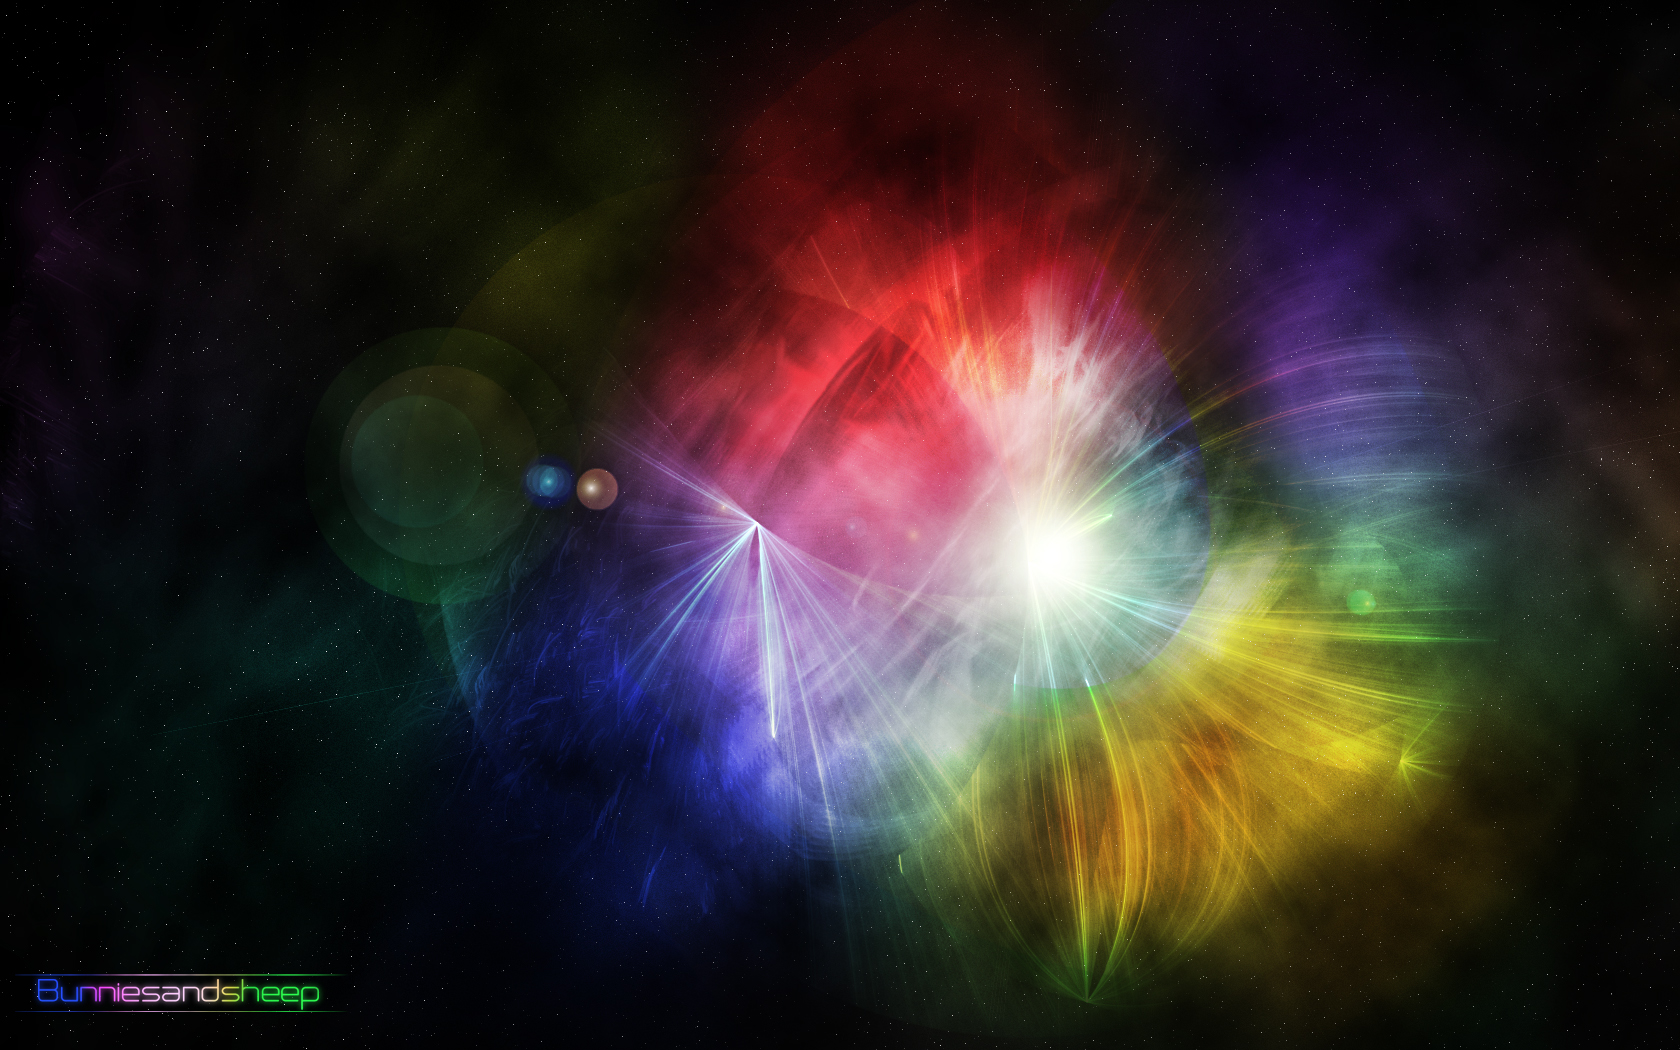 http://fc01.deviantart.com/fs36/f/2008/263/8/d/Explosion_of_Light_by_Bunniesandsheep.jpg